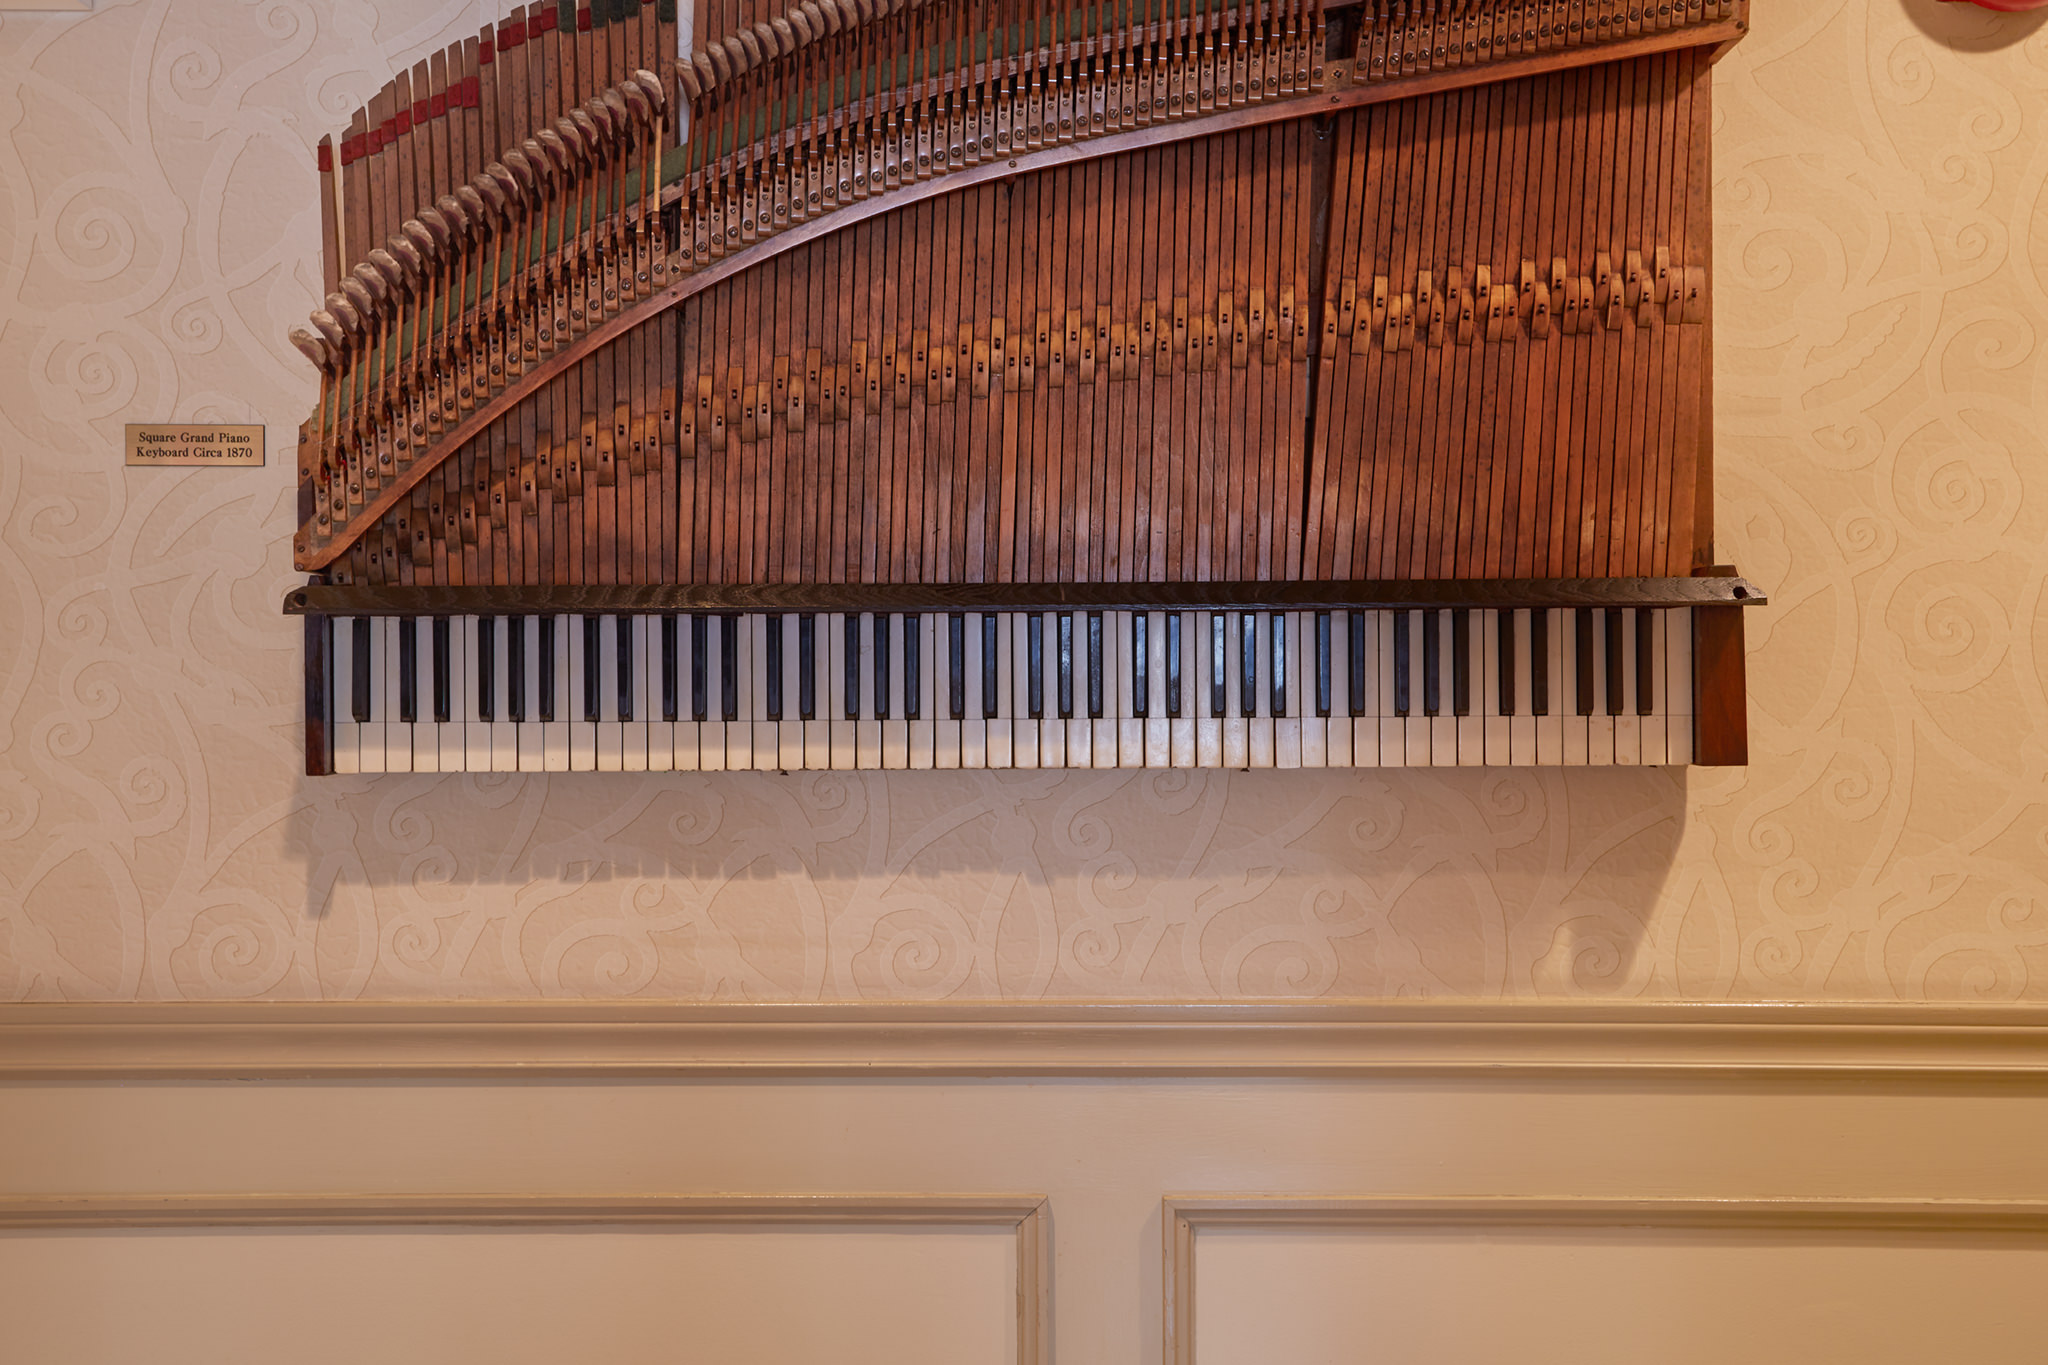 1 of 6 Pieces of 1870 Square Grand Piano That Adorn the Lobby Walls